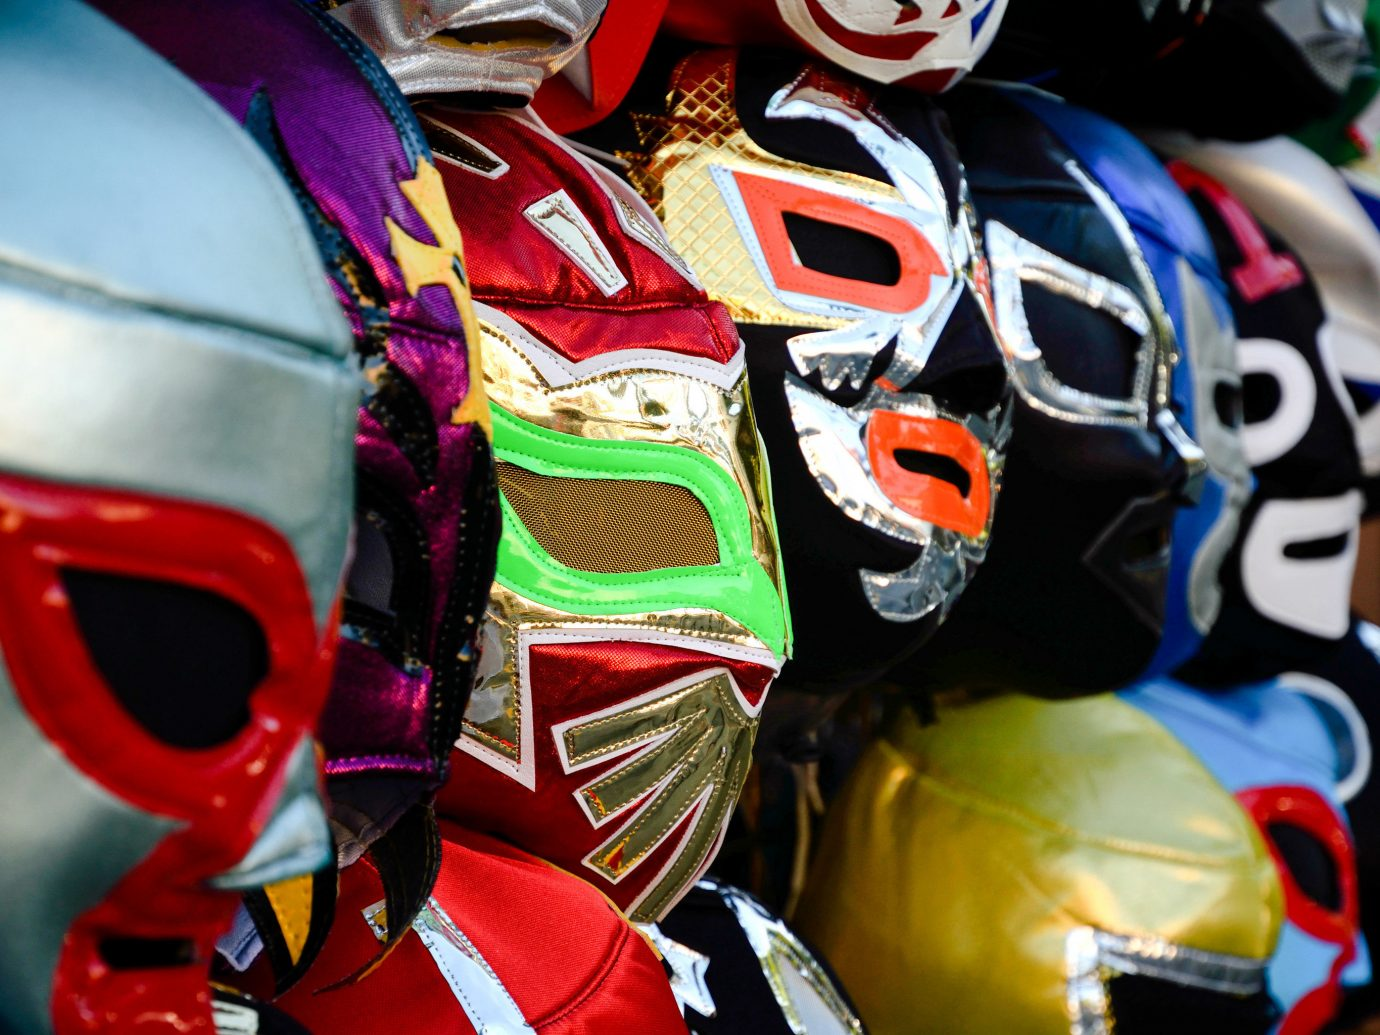 City Mexico City Trip Ideas protective gear in sports helmet yellow hockey protective equipment personal protective equipment headgear protective equipment in gridiron football football helmet car product costume competition event goaltender mask football equipment and supplies